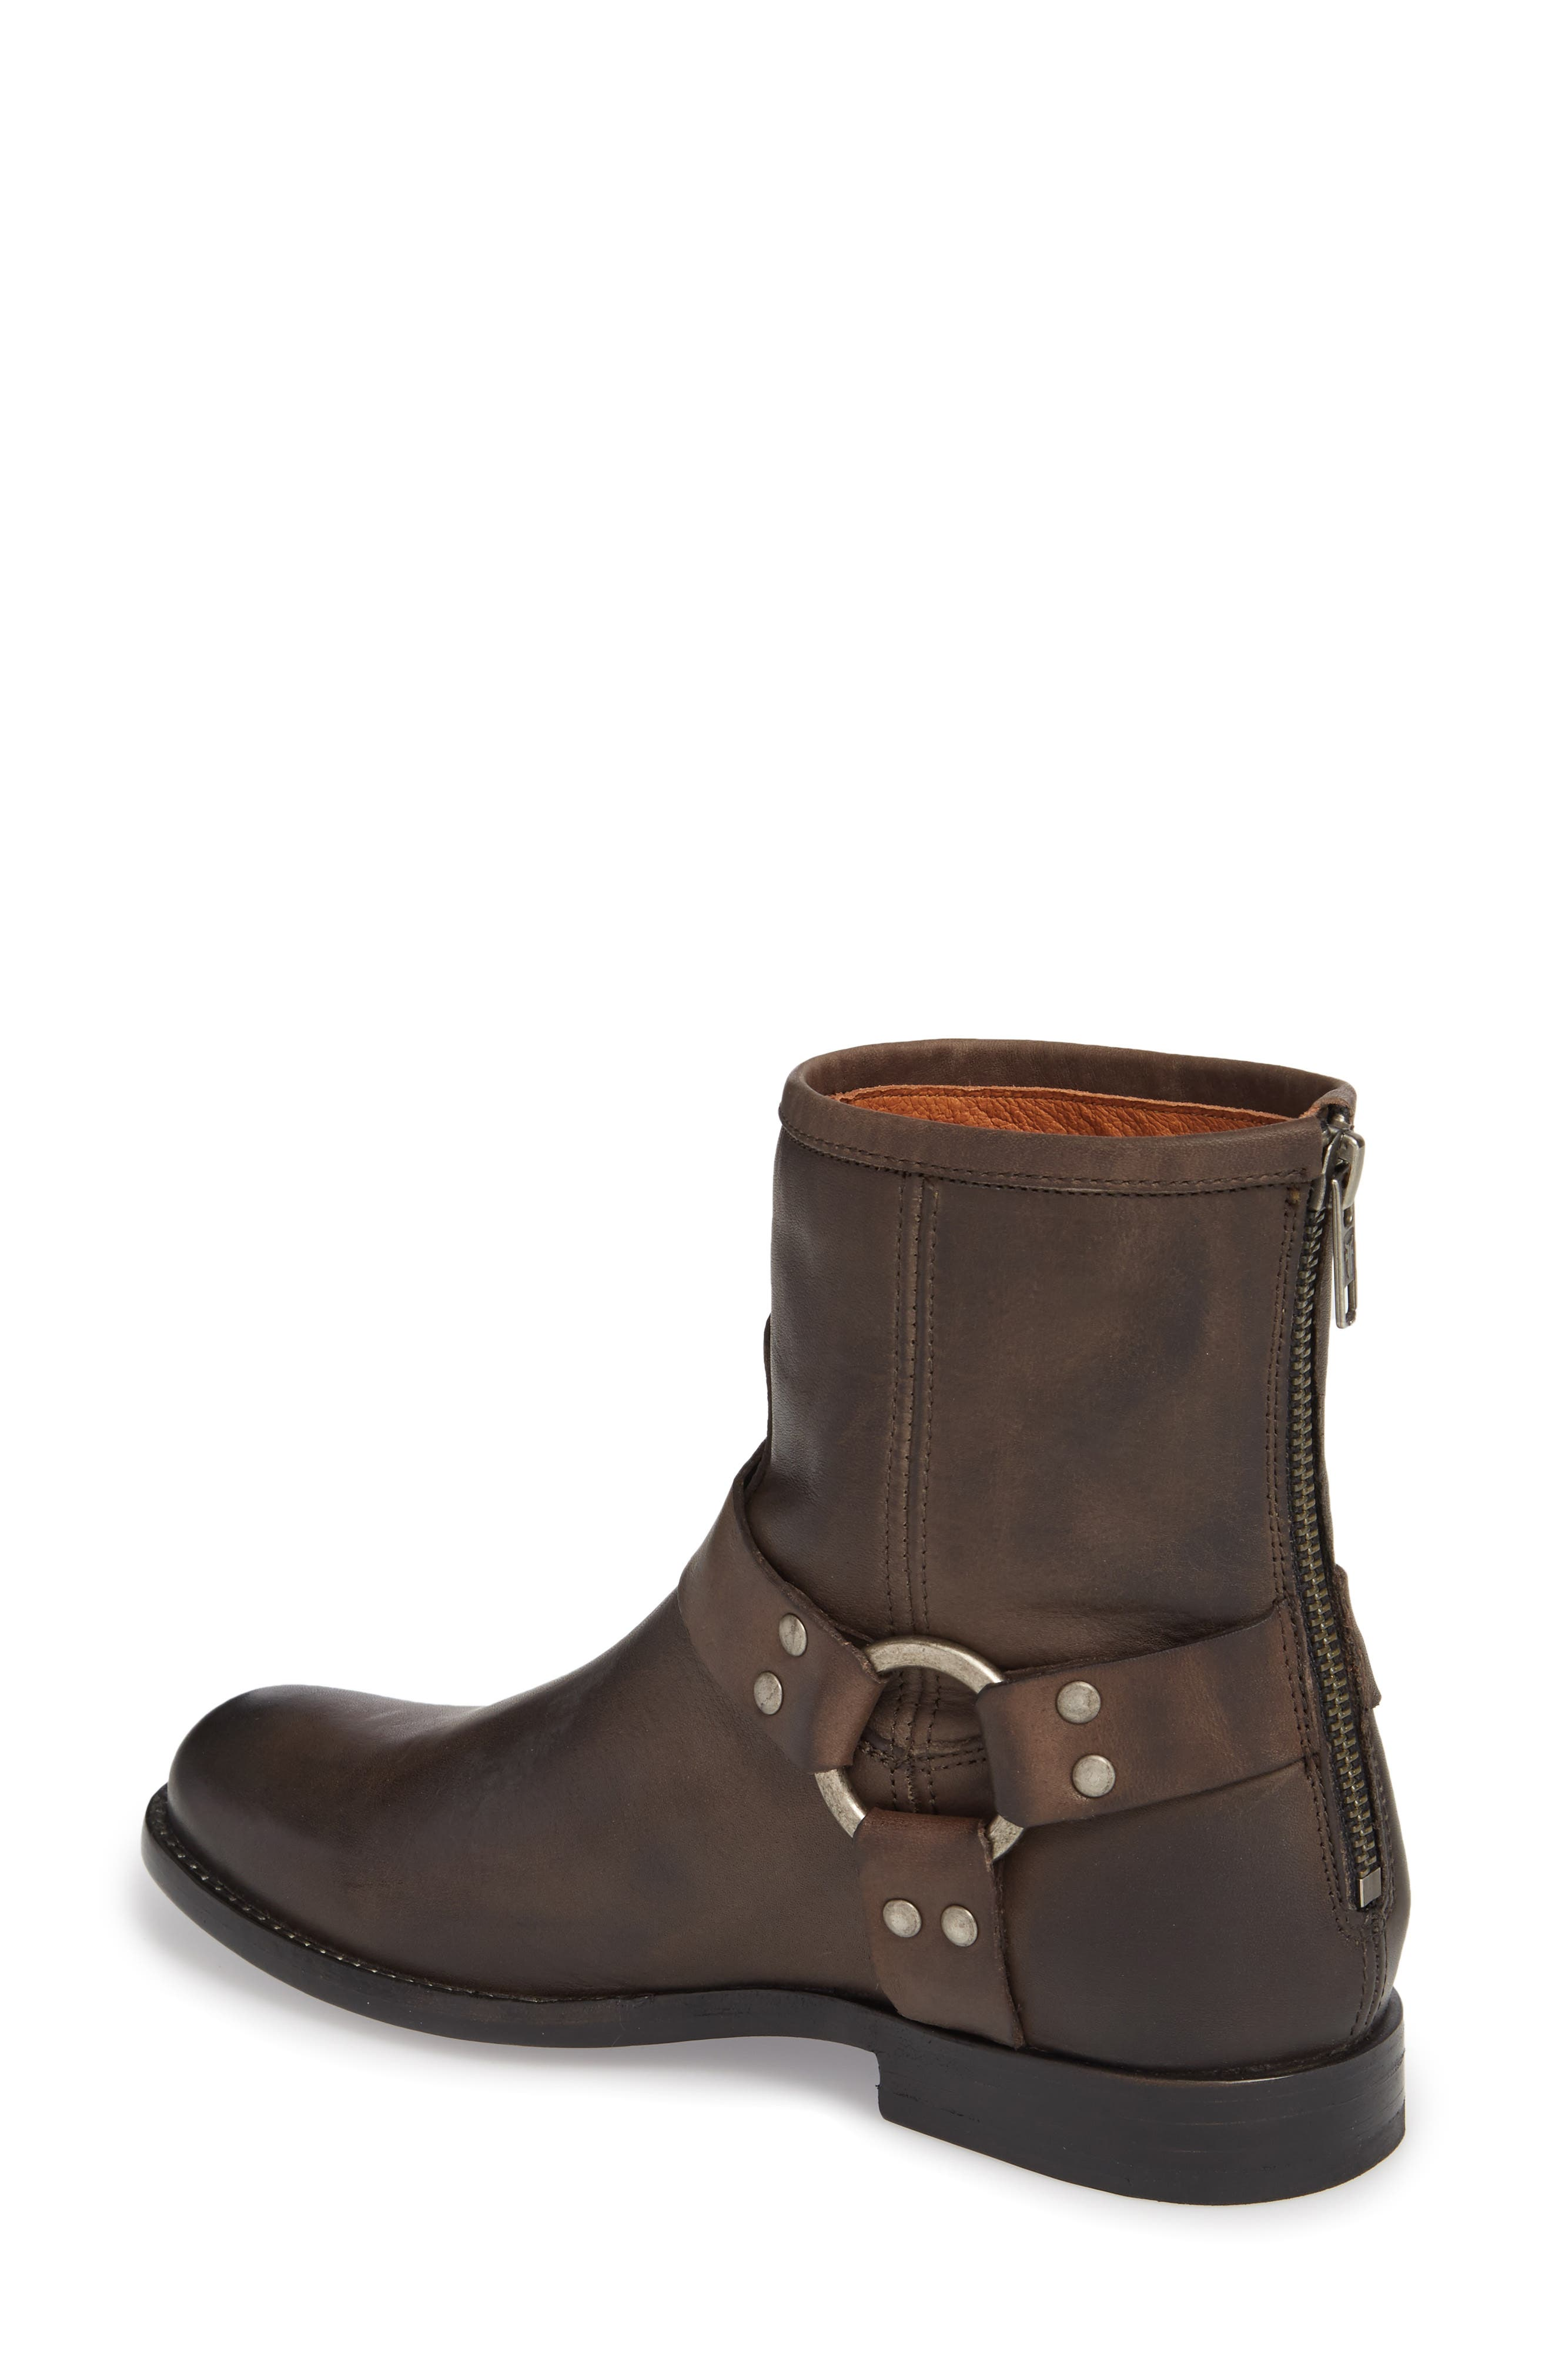 Phillip Harness Boot,                             Alternate thumbnail 2, color,                             Smoke Leather